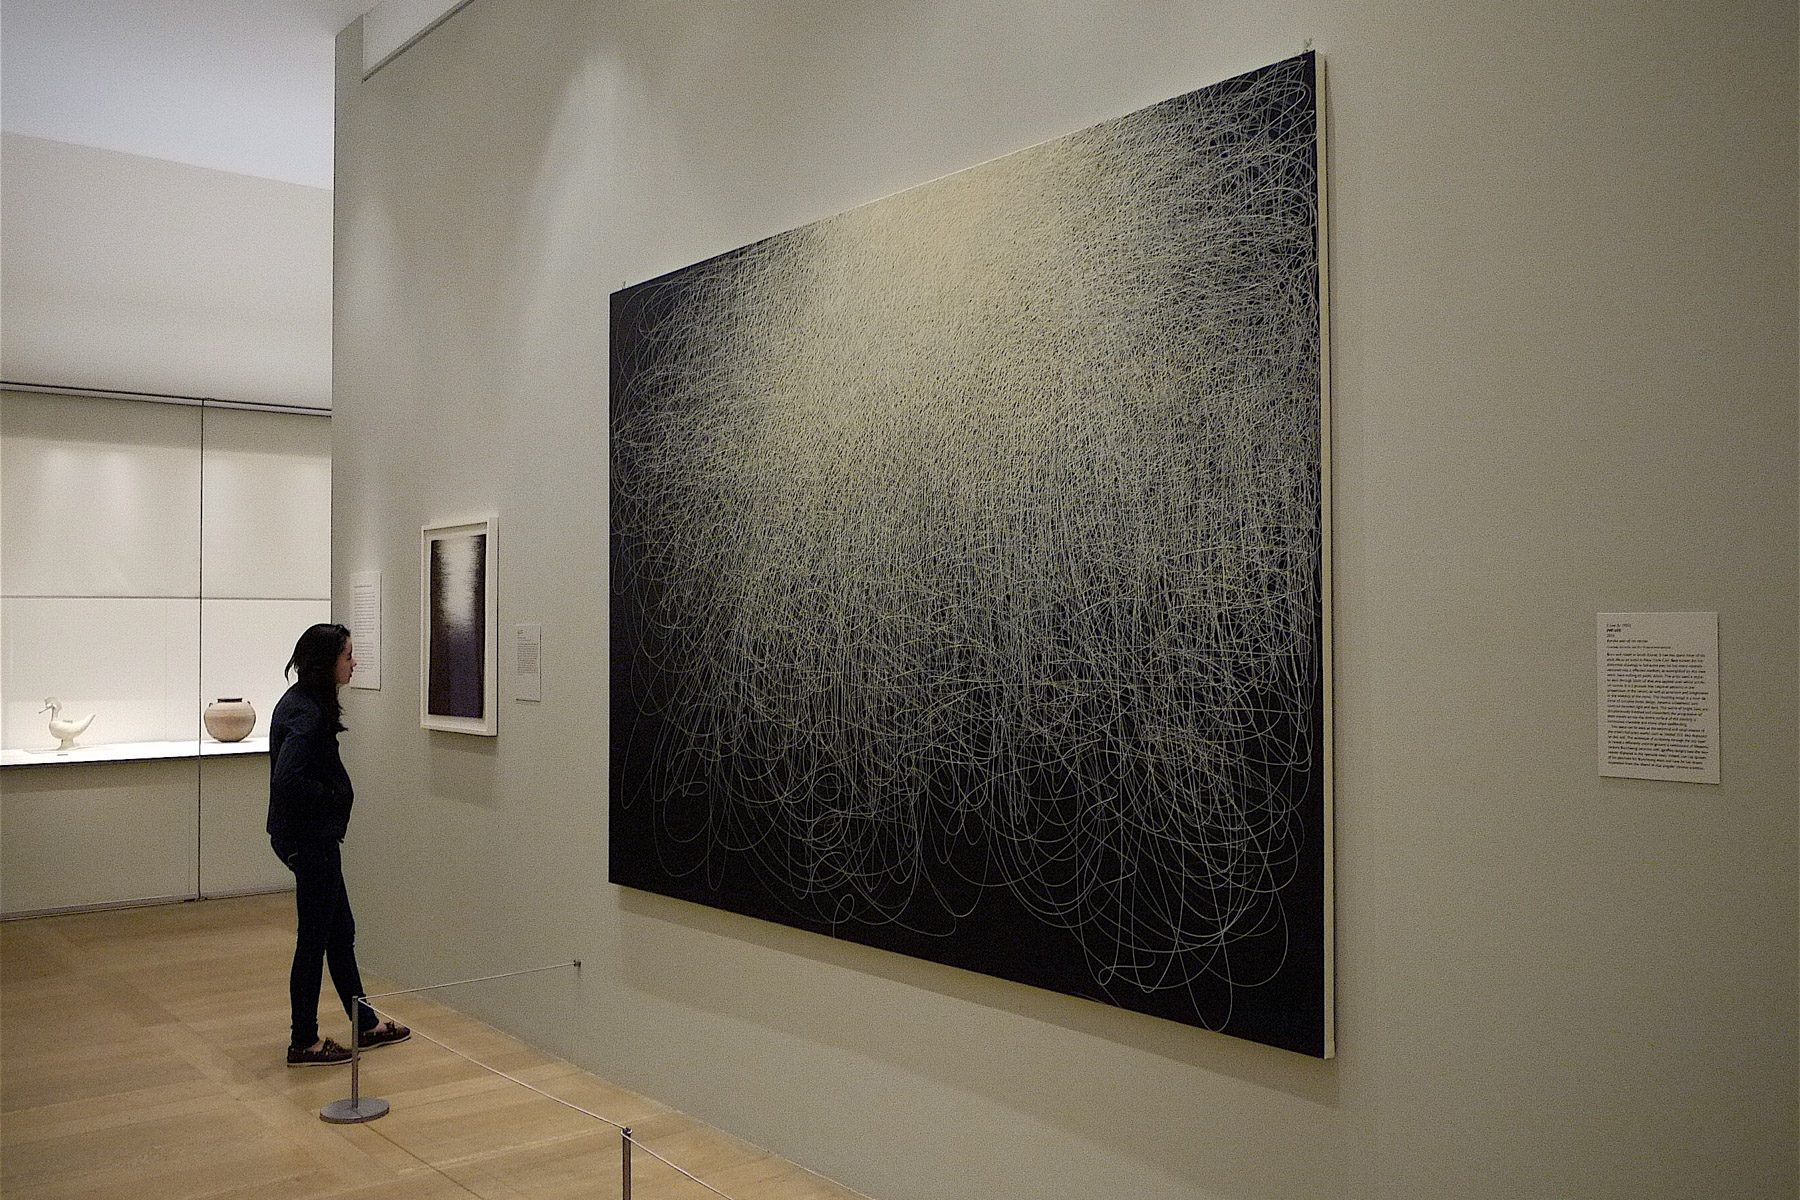 Installation view of Il Lee's Untitled 303 and IW-105 at the Metropolitan Museum of Art, New York, 2010-11.